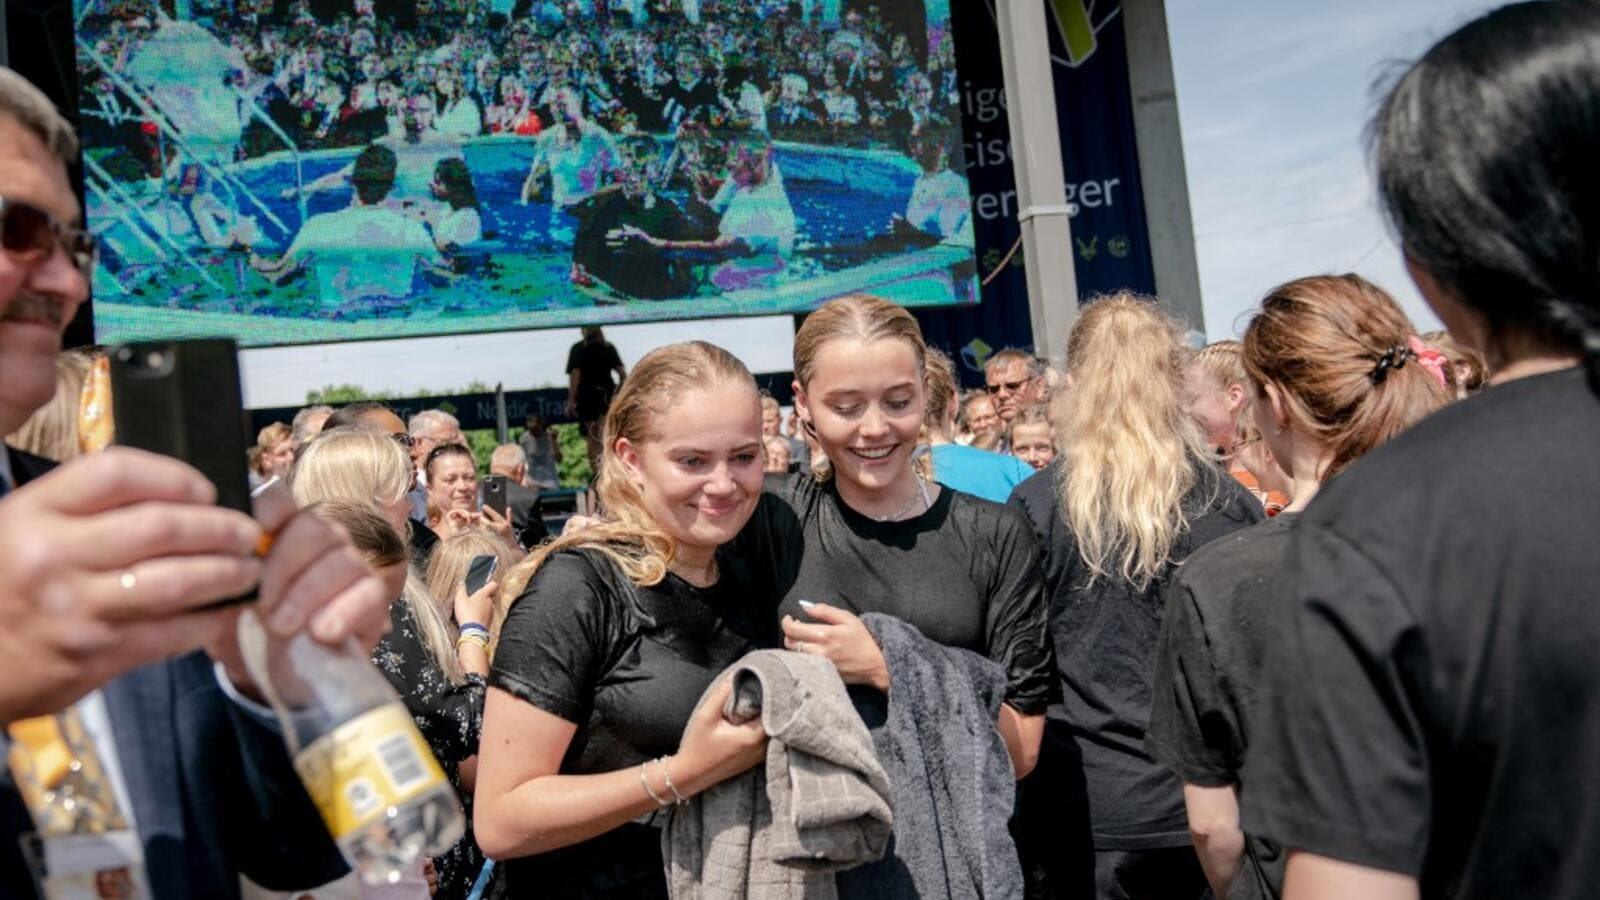 Jehovah's Witnesses react after receiving the baptism during a group baptism event during an international convention at Broendby Stadium on July 20, 2019 in Copenhagen.  Ida Marie Odgaard / Ritzau Scanpix / AFP